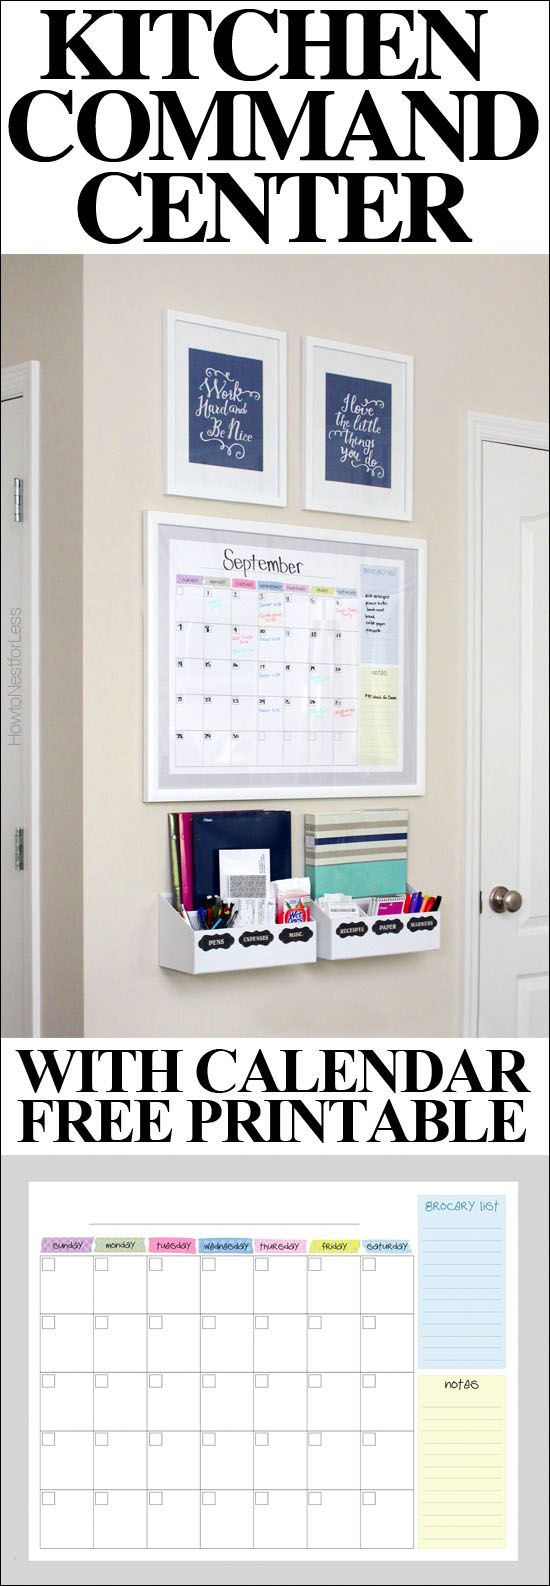 Centre de commande Kitchen command center with FREE calendar printable! The entire thing cost less than $75!